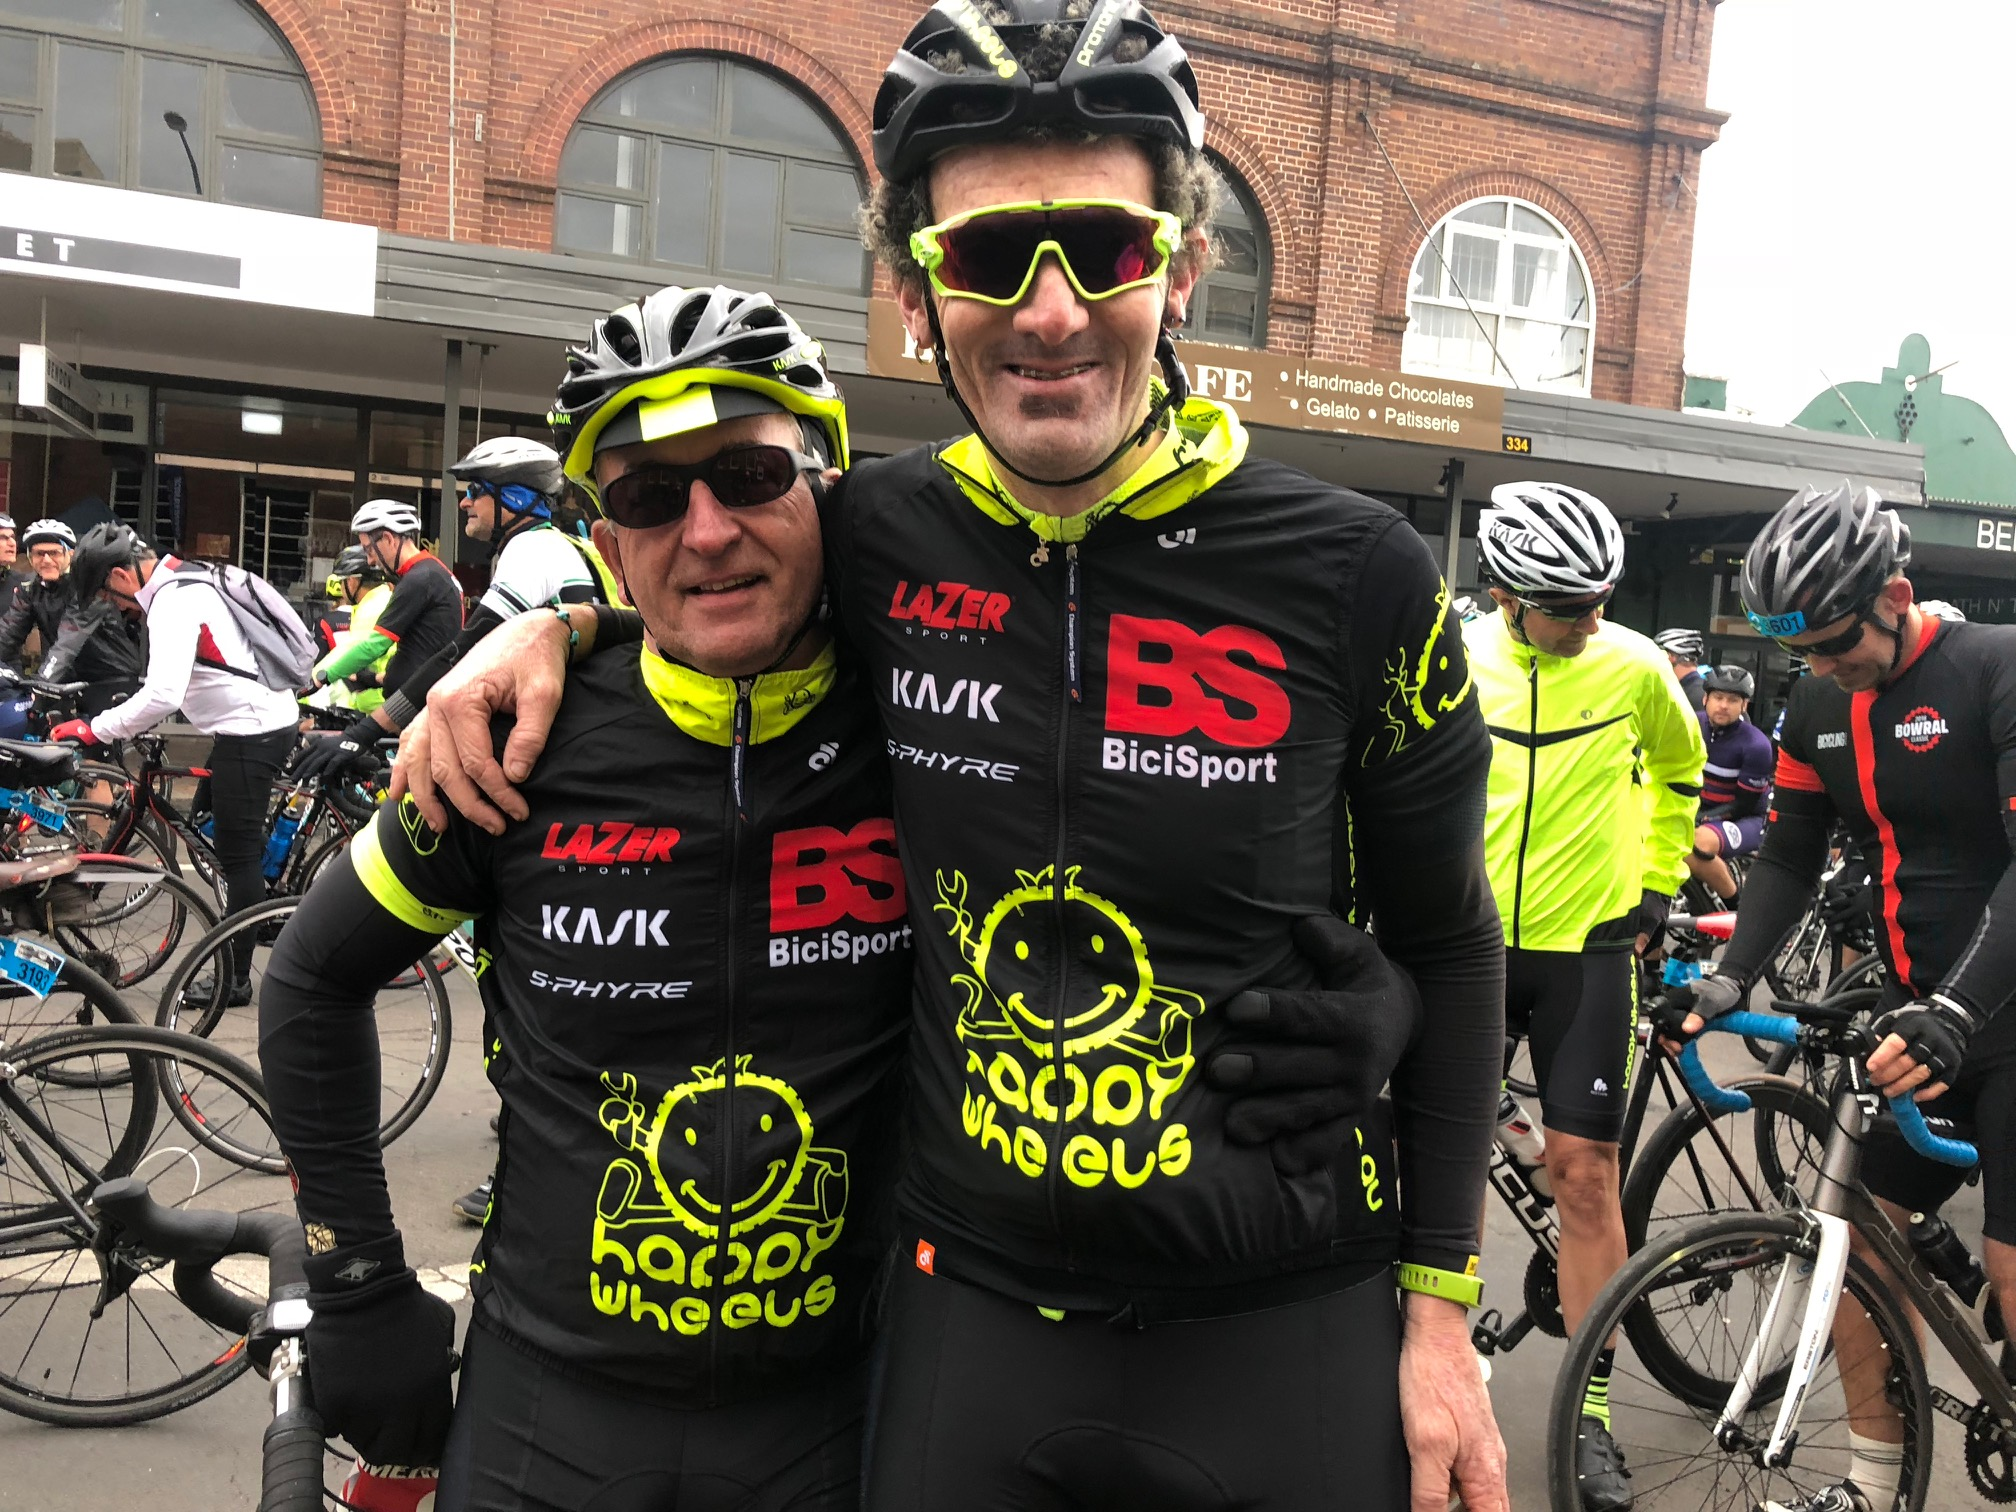 Bowral Classic @ 21 Oct - Mike O'Reilly & Stewart Campbell